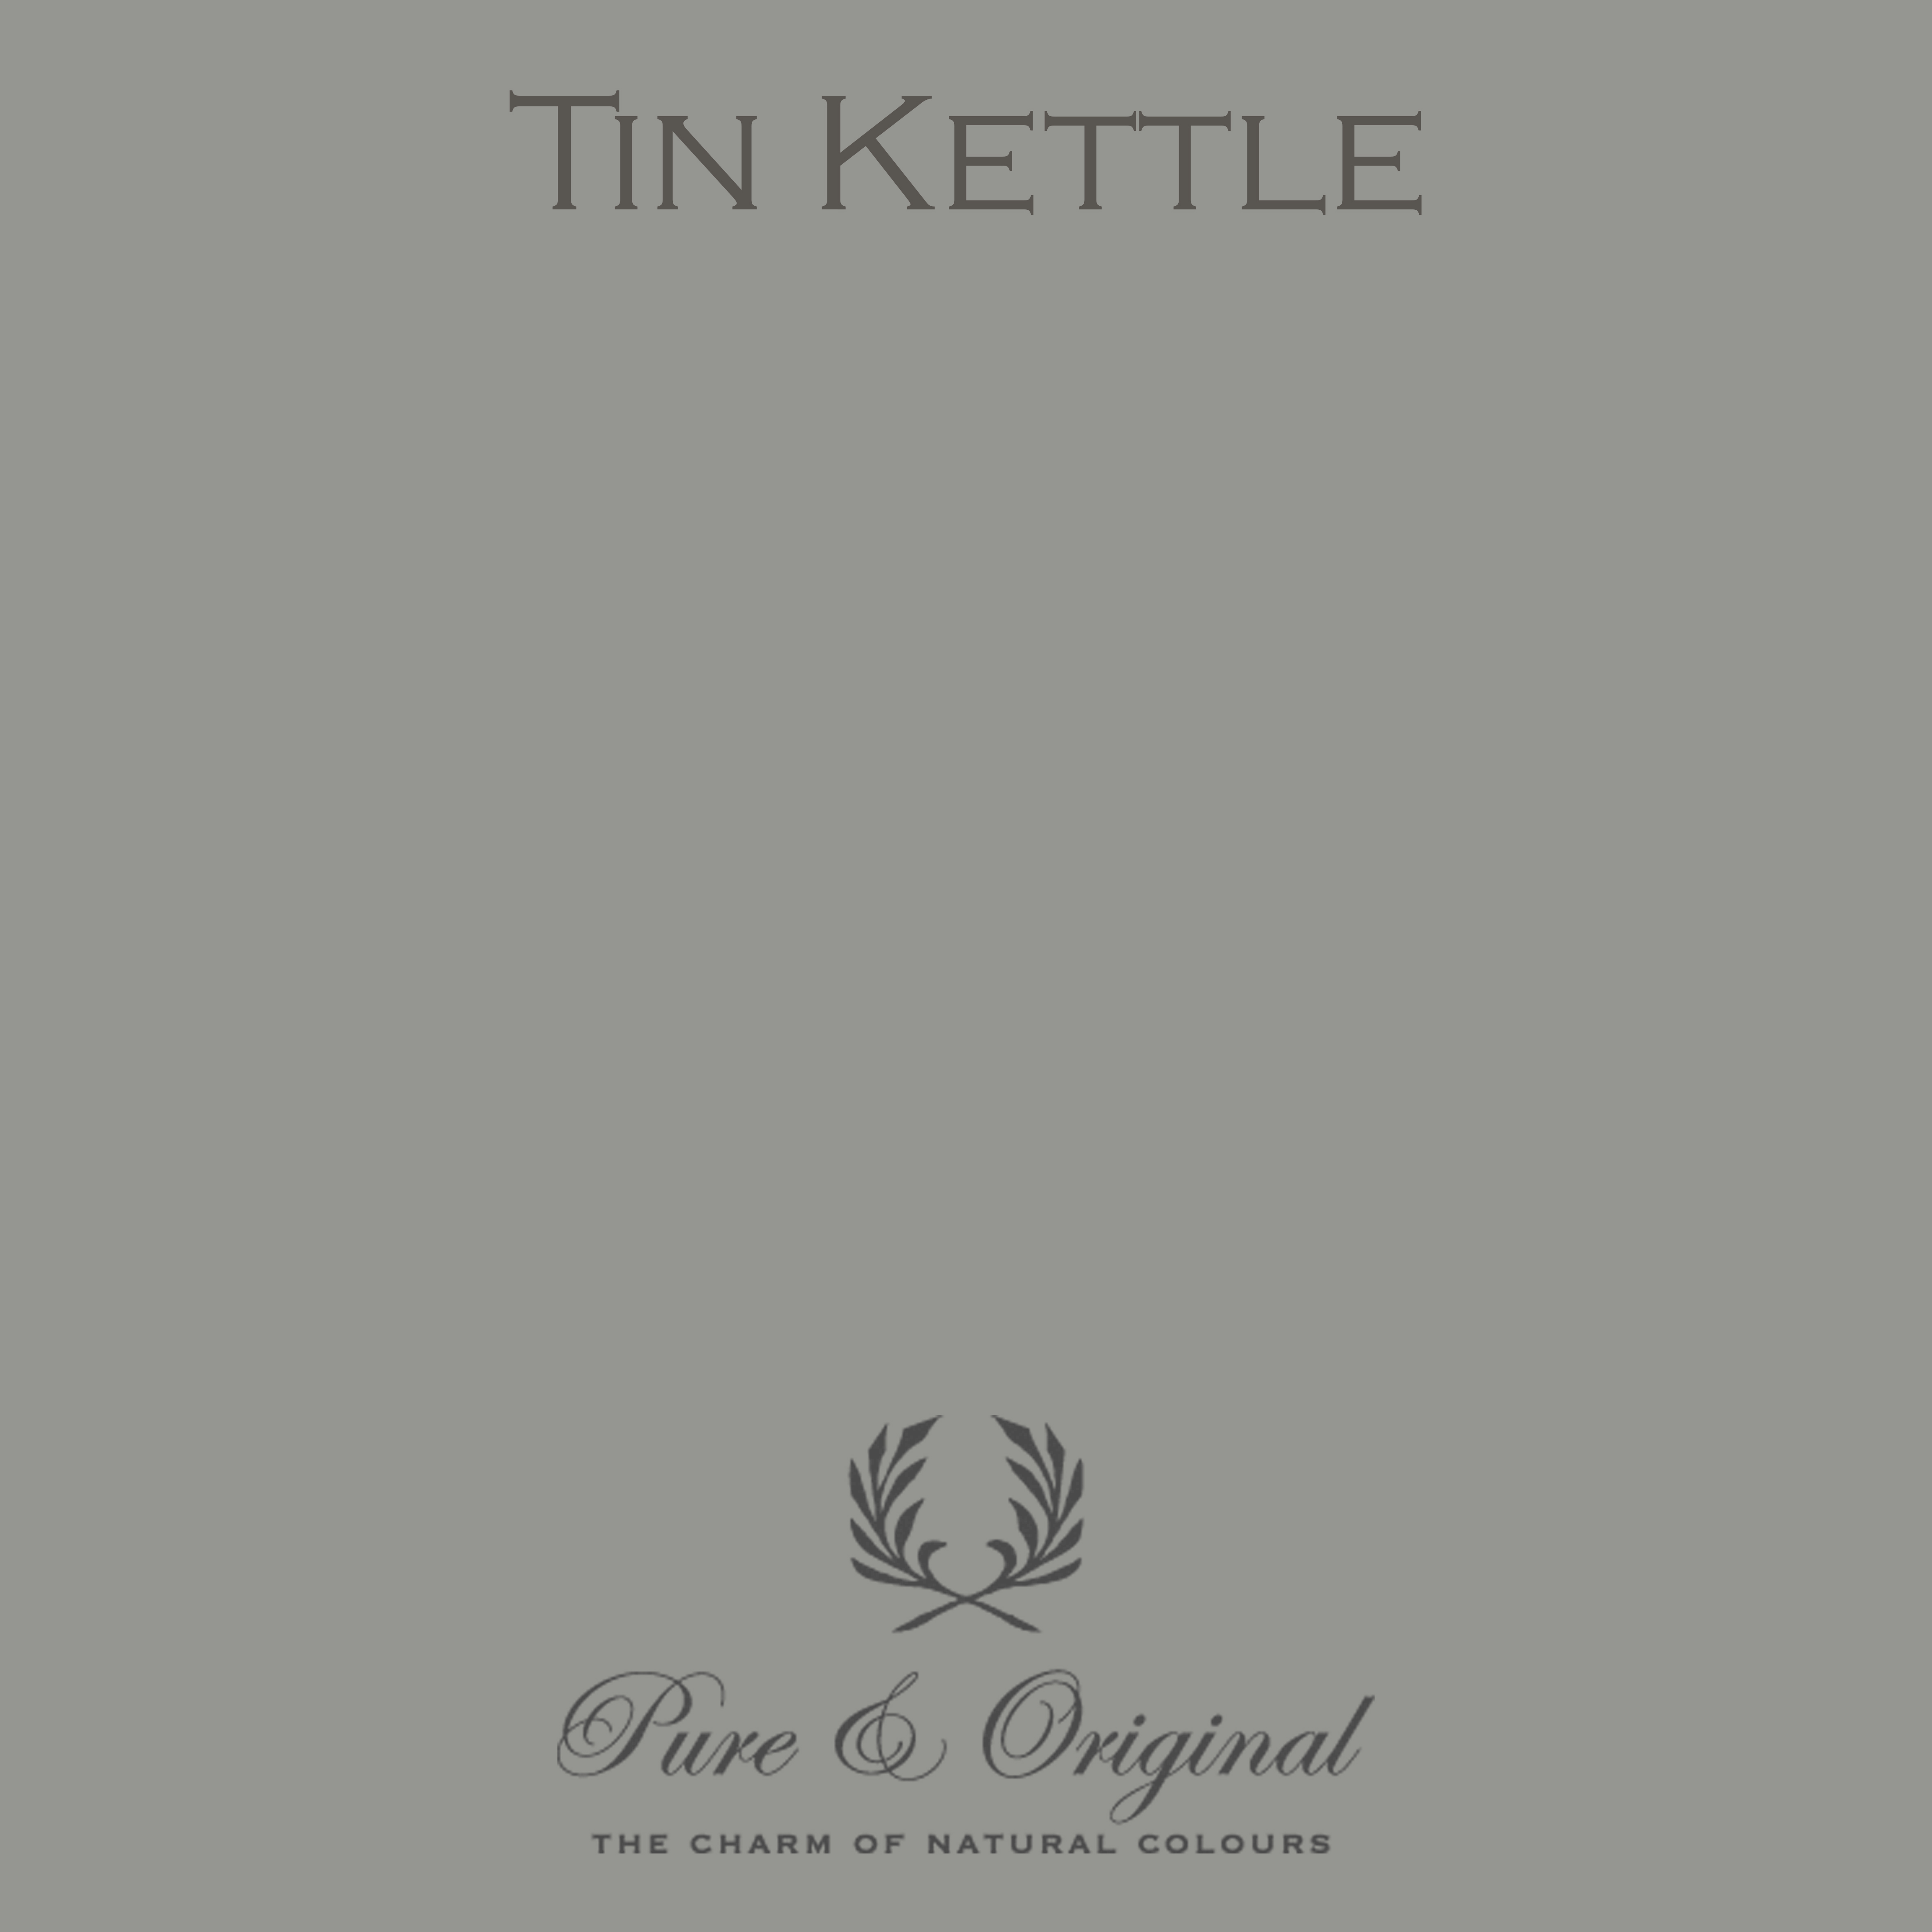 tin kettle pure and original